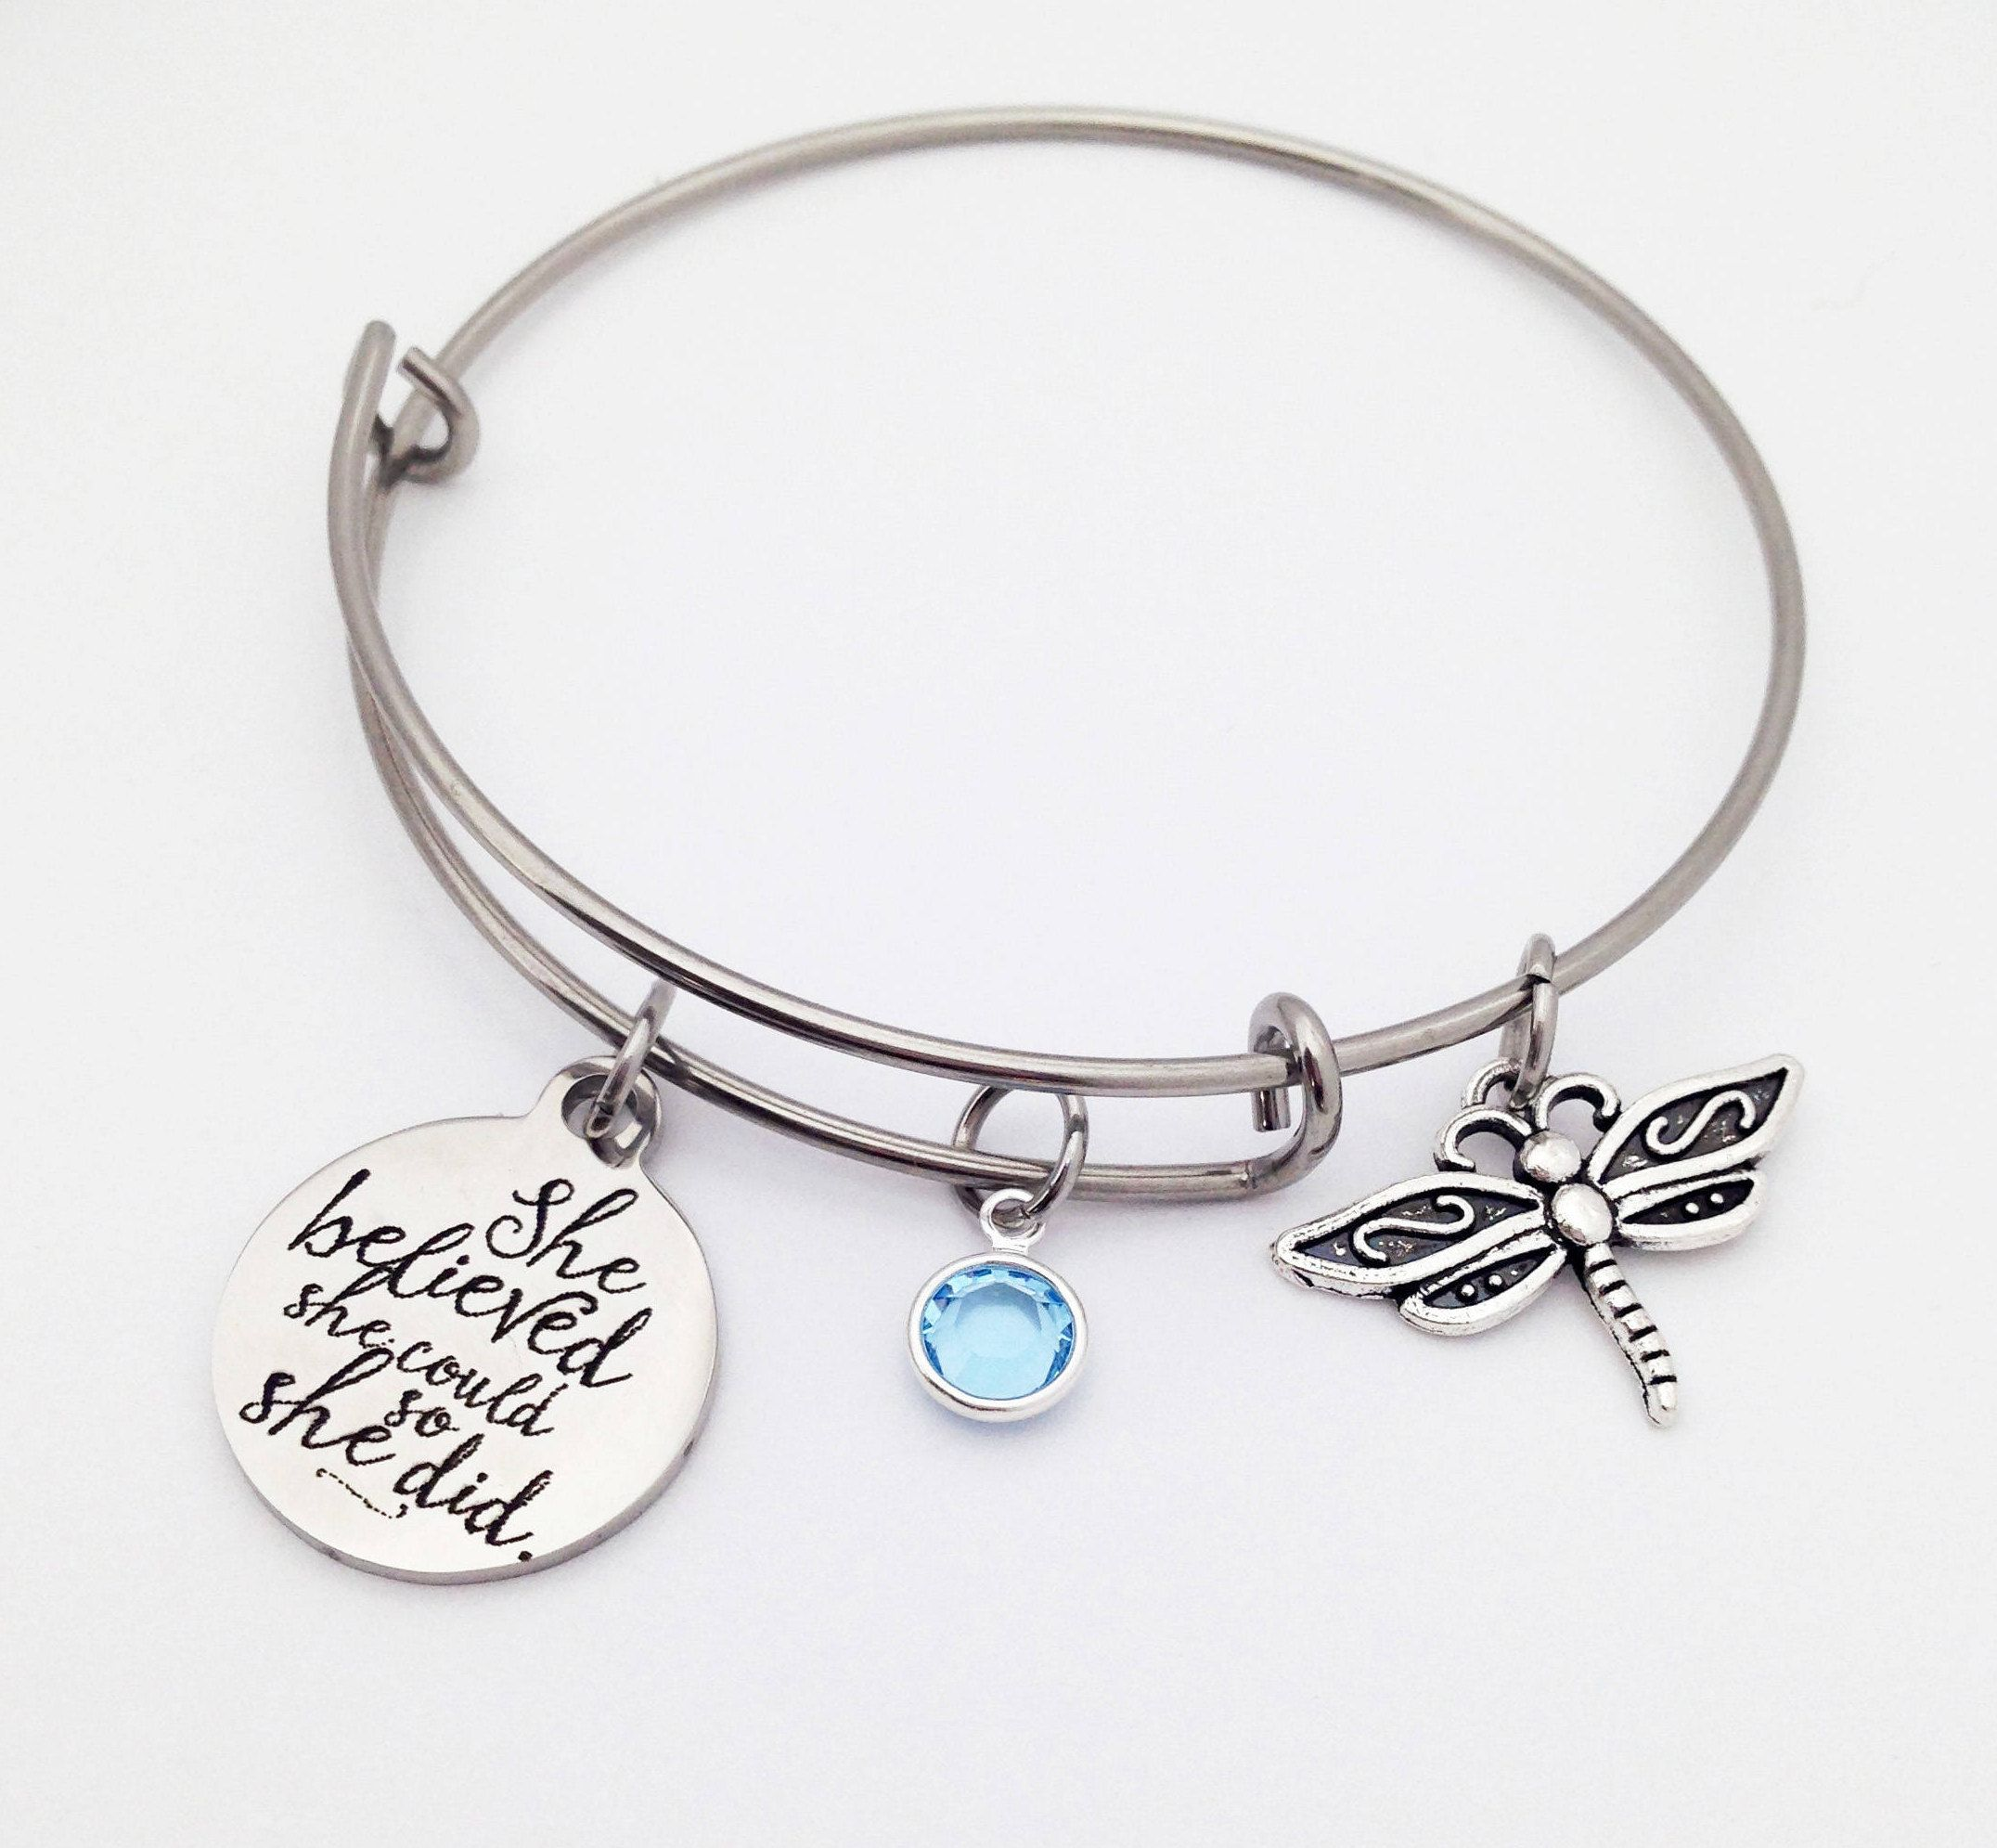 Best Christmas Gifts For Her 2020 Jewelry Graduation Gift for Her, Dragonfly Bracelet, Dragonfly Jewelry